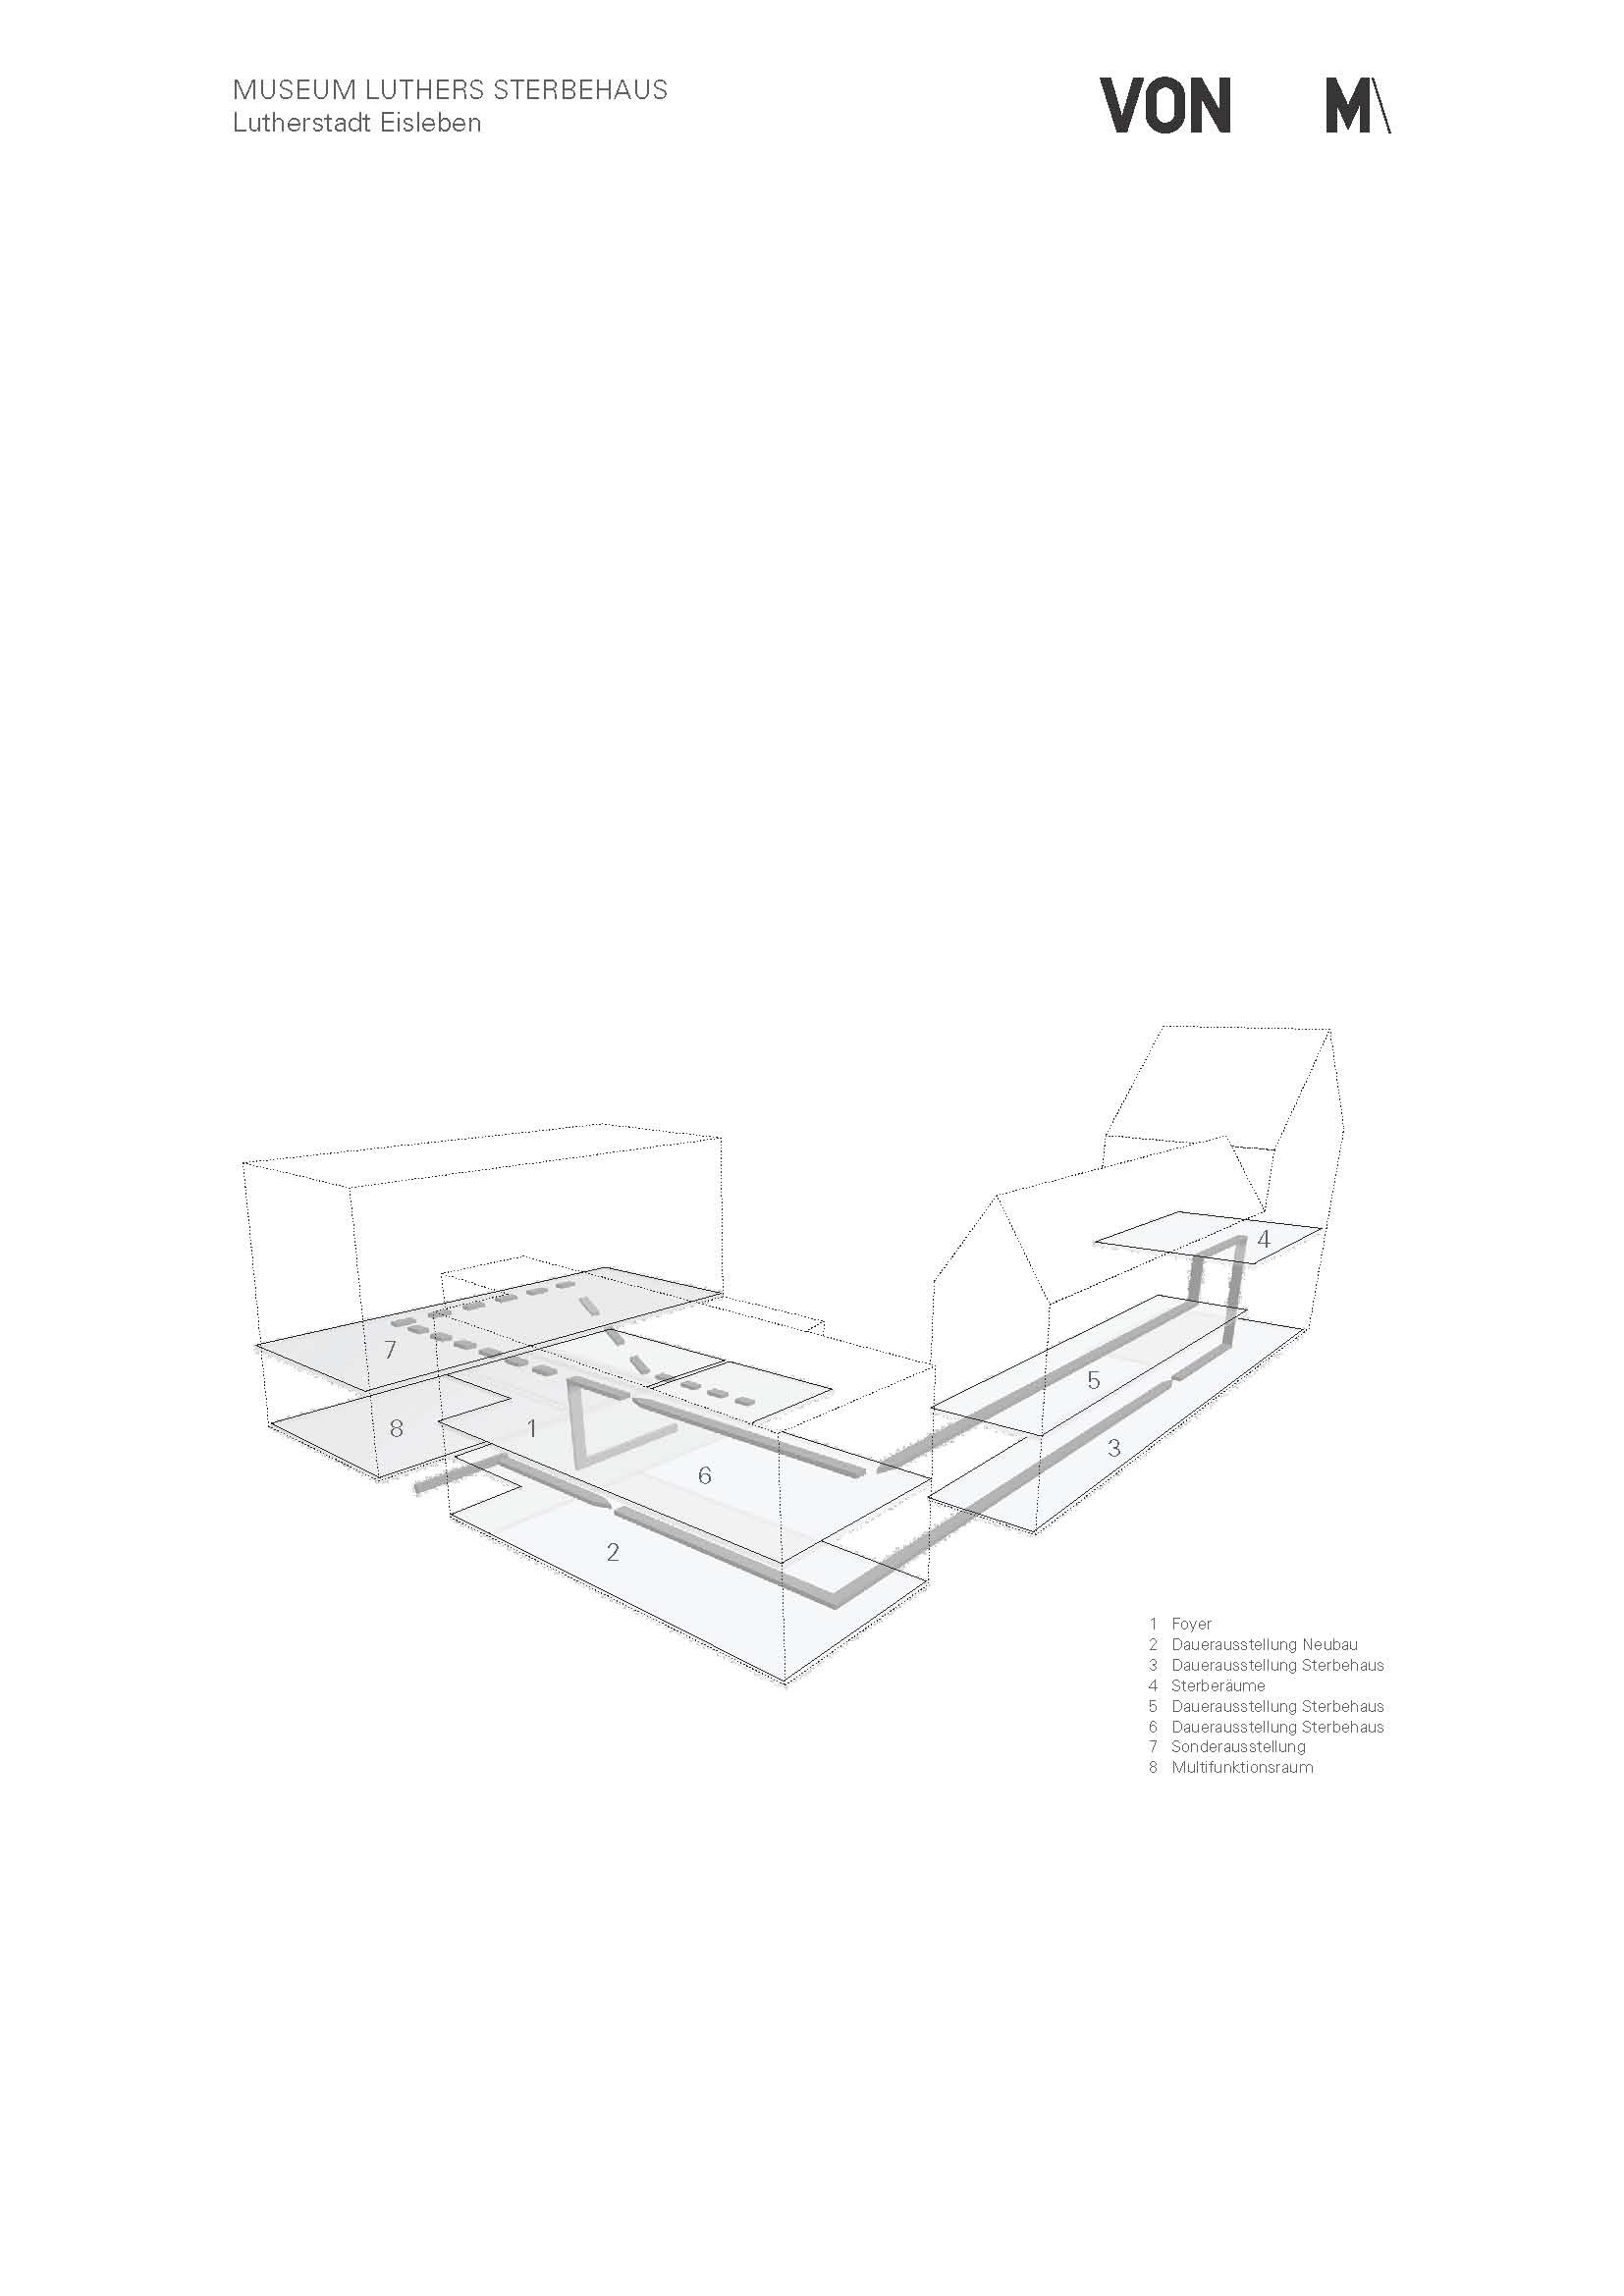 gallery of museum luthers sterbehaus von m 23. Black Bedroom Furniture Sets. Home Design Ideas